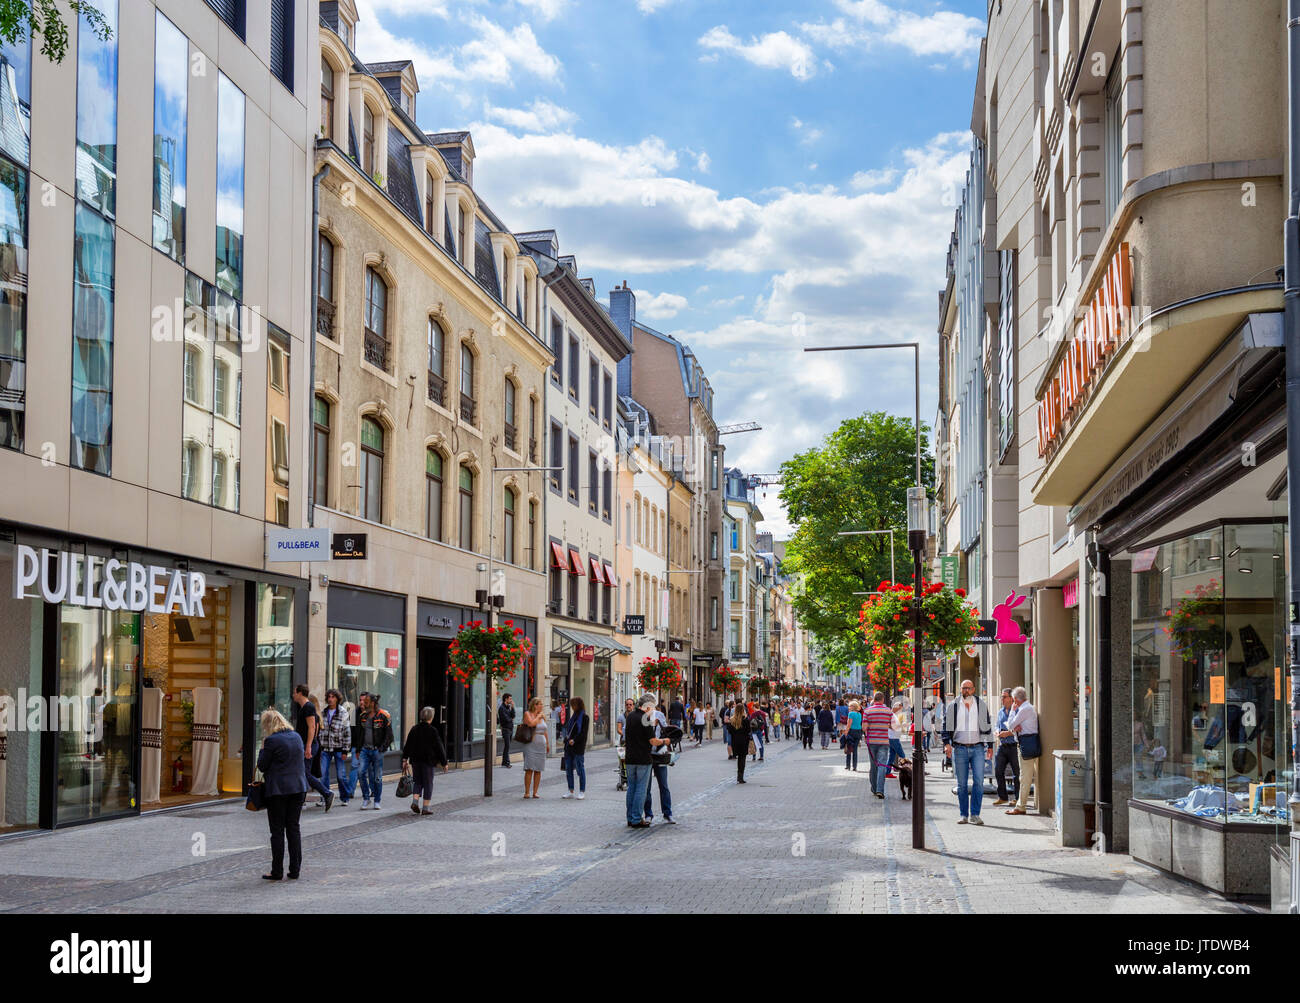 Shops on the Grand-Rue in the old town (Ville Haute), Luxembourg city, Luxembourg - Stock Image